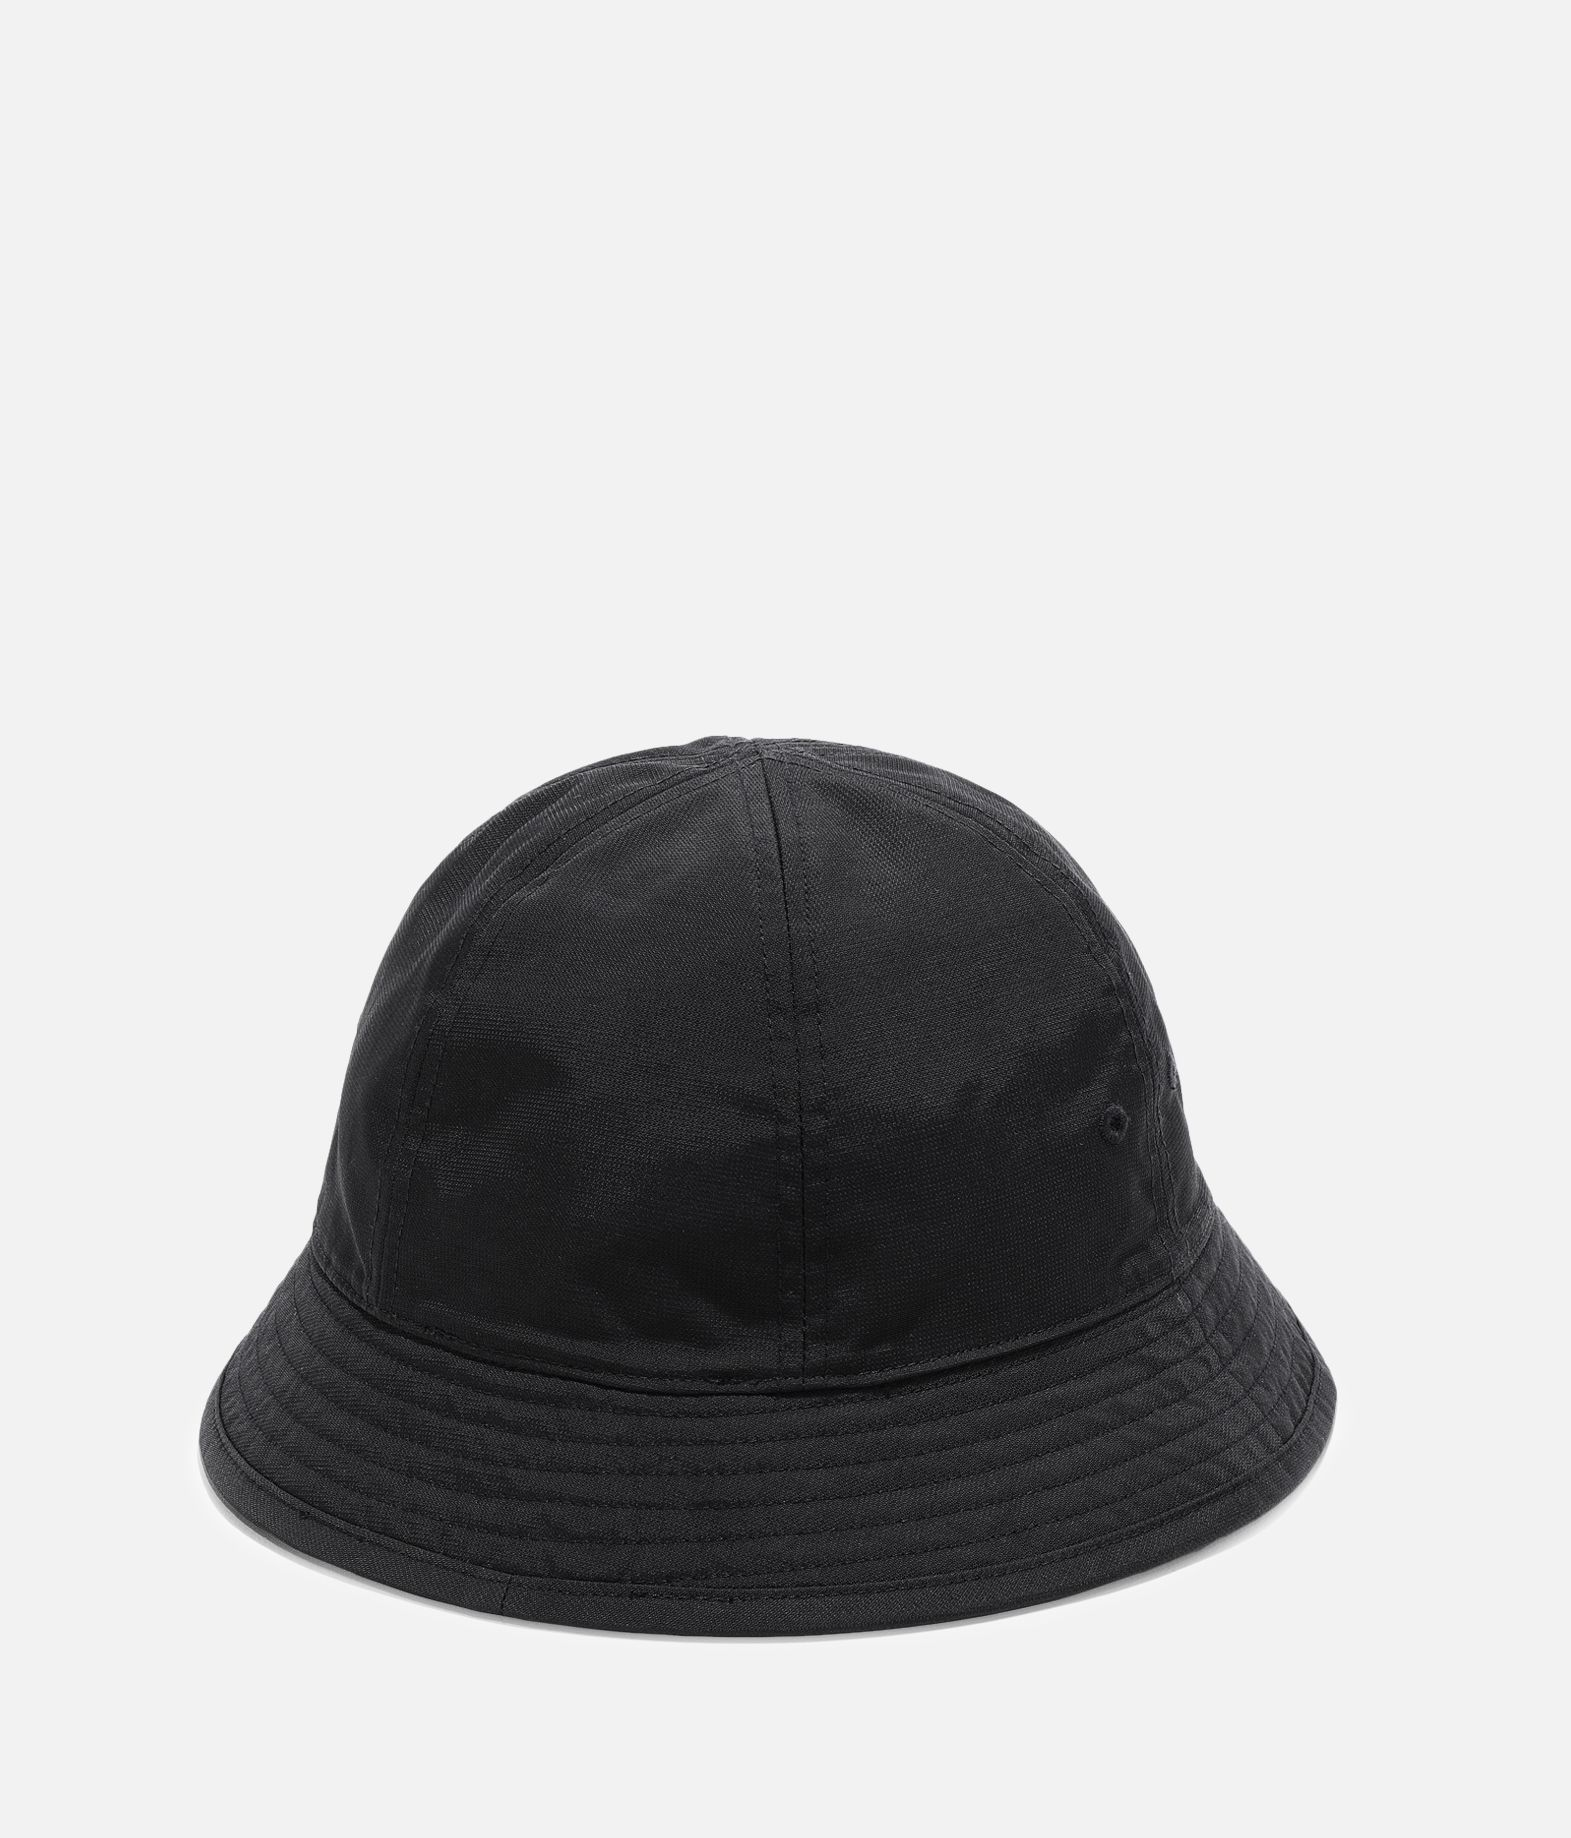 Y-3 Y-3 Bucket Hat Cap E r